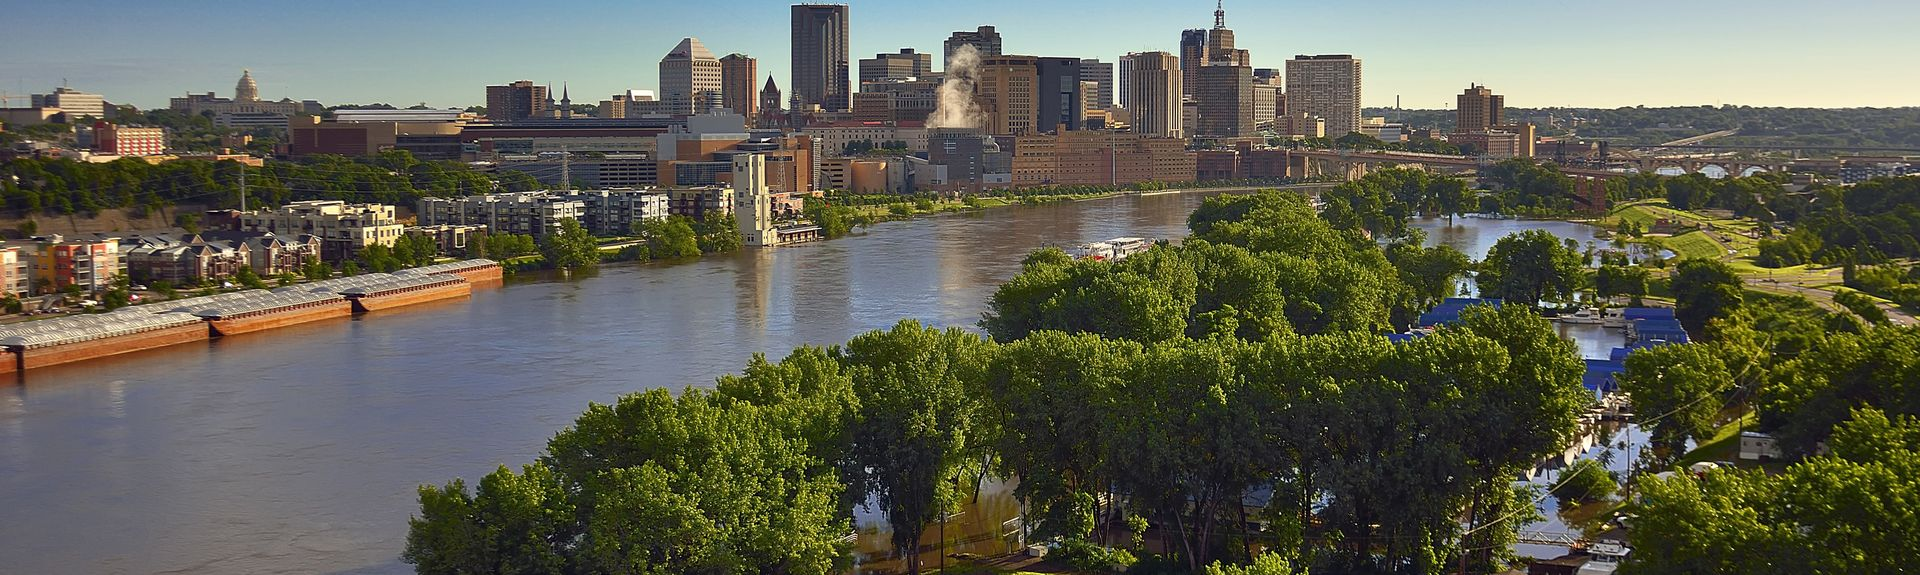 St. Paul, Minnesota, Estados Unidos